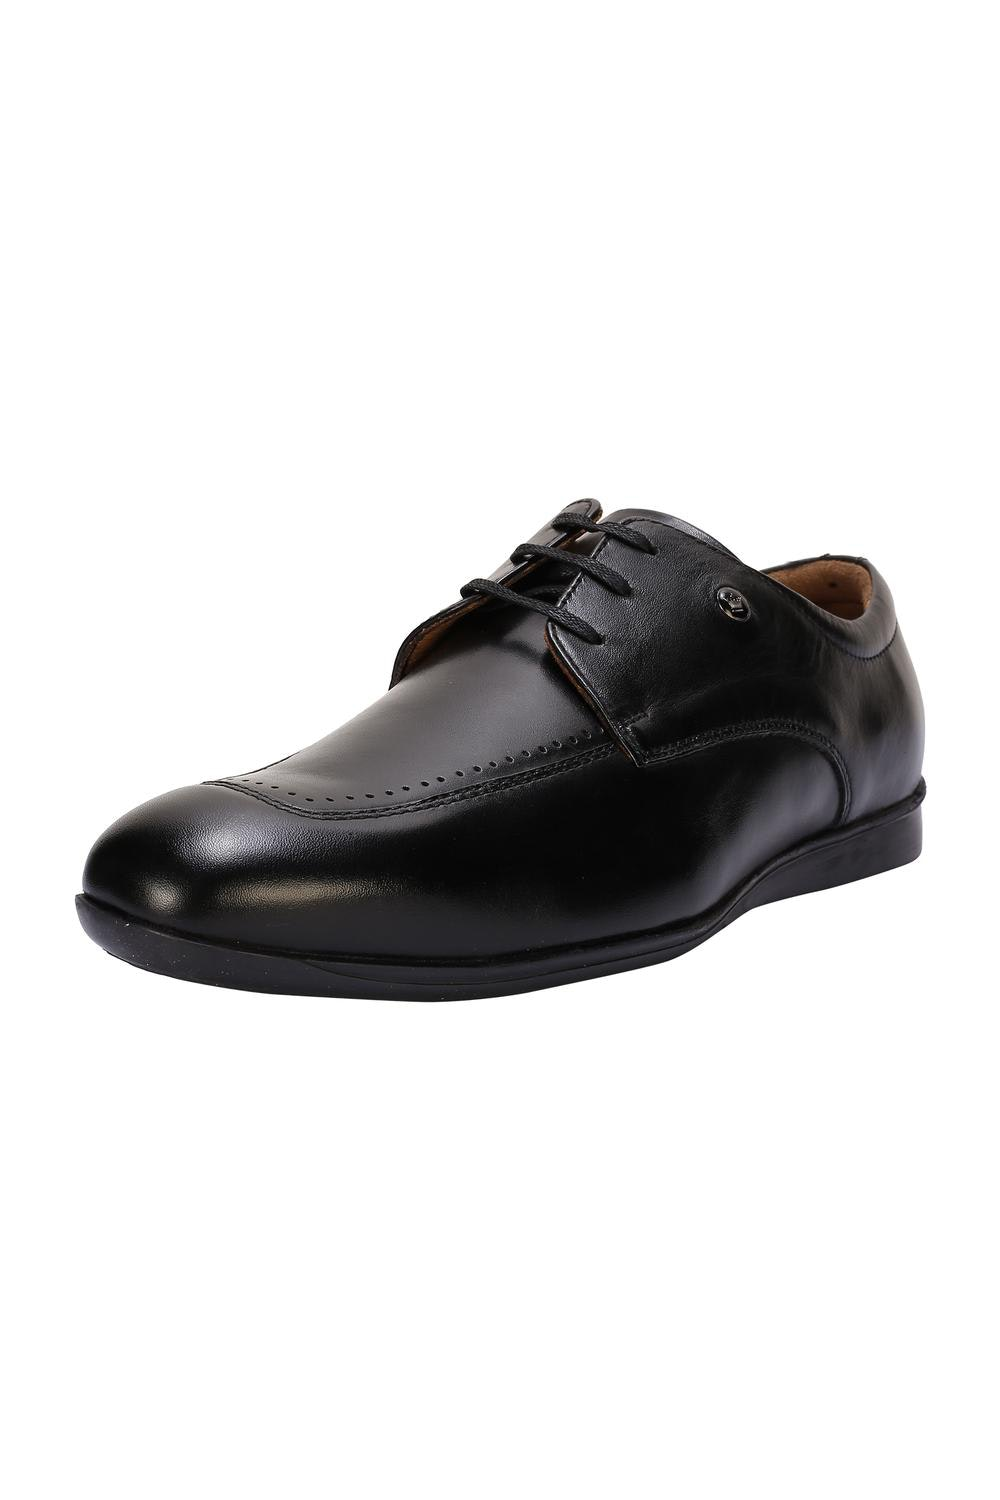 185027f9064 Louis Philippe Footwear-Buy Louis Philippe Men Shoes